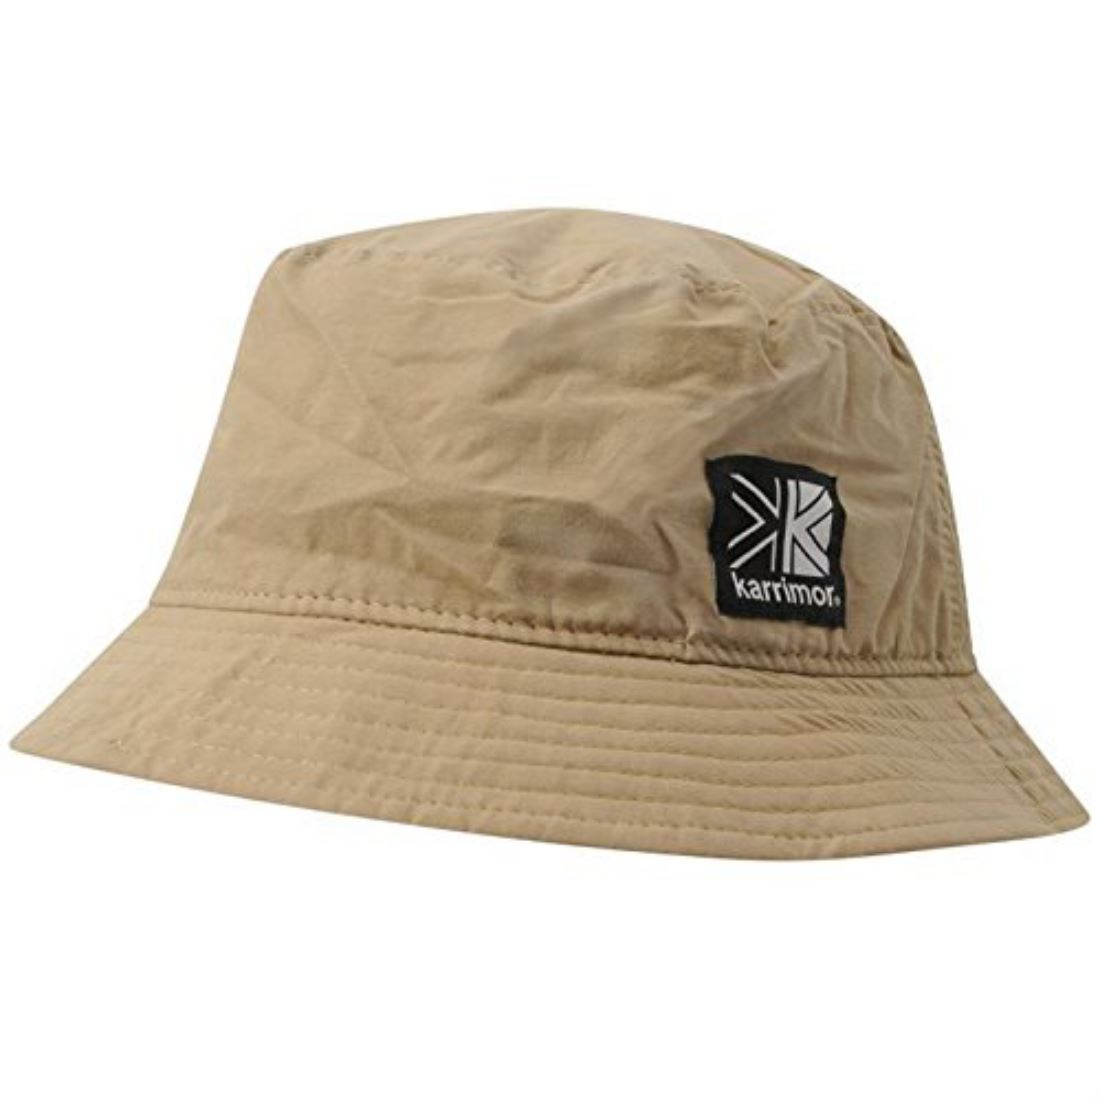 Karrimor Mens Bucket Hat Casual Sun Outdoor Accessories | eBay